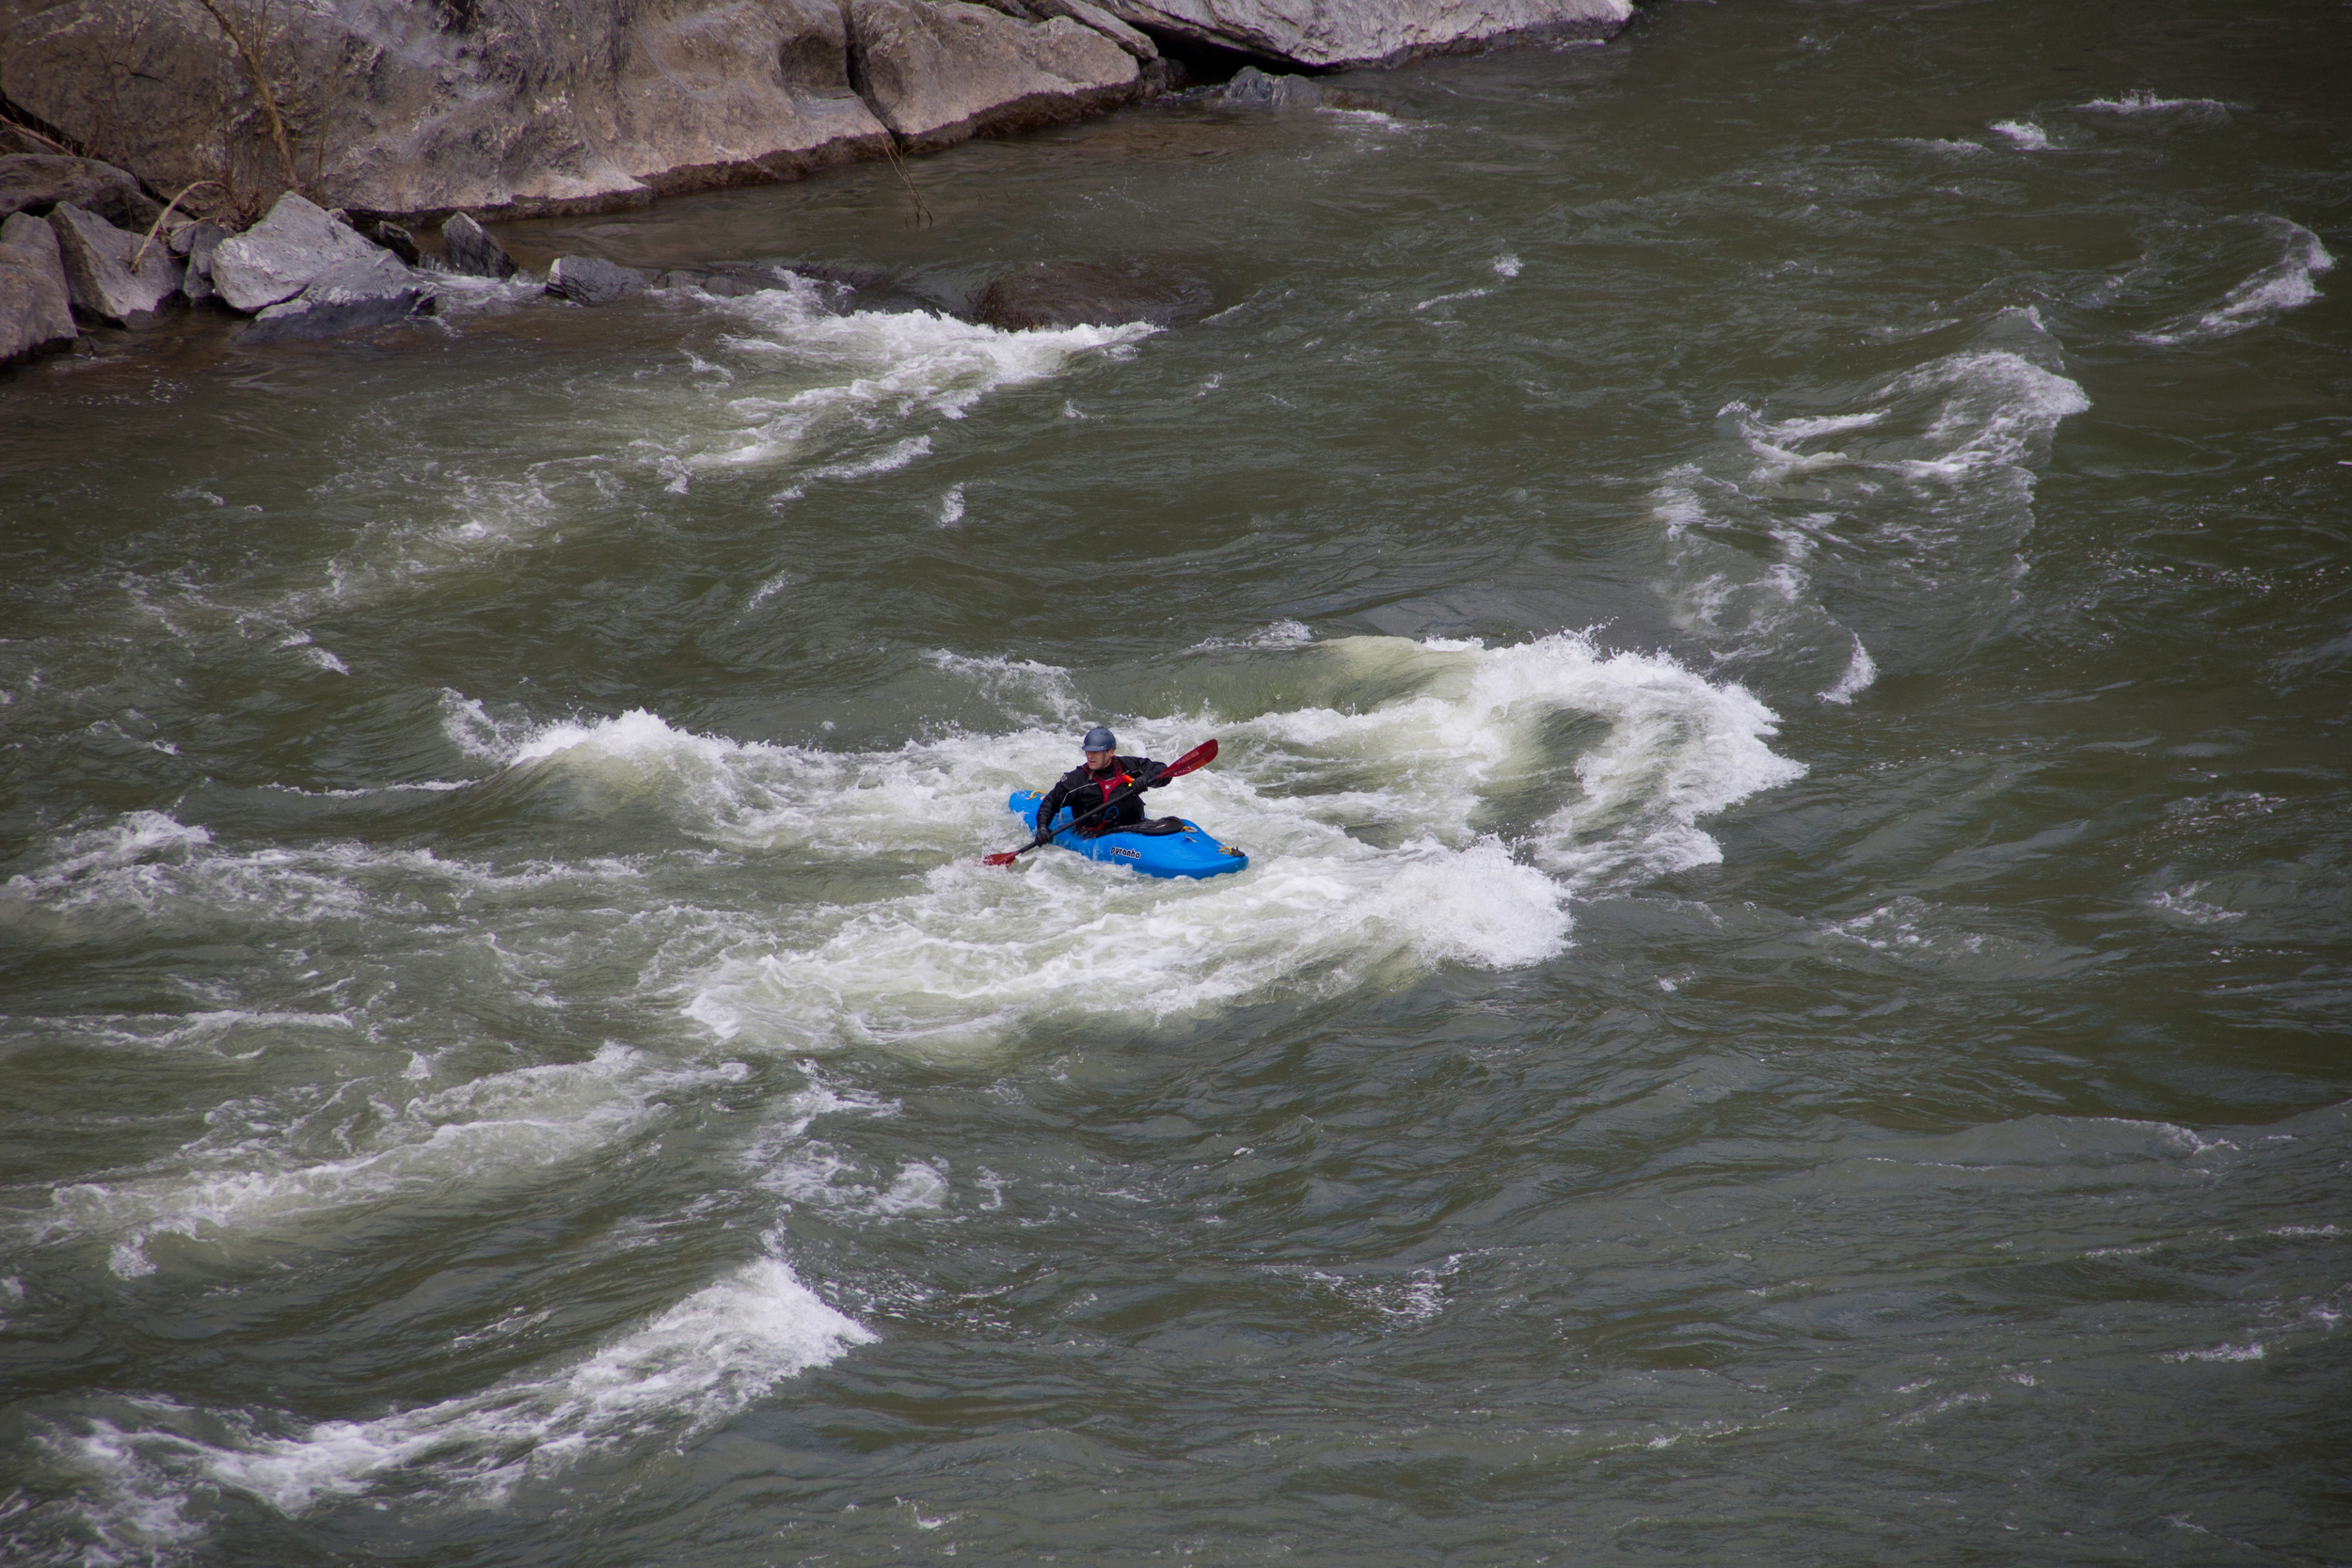 A wild kayaker appeared